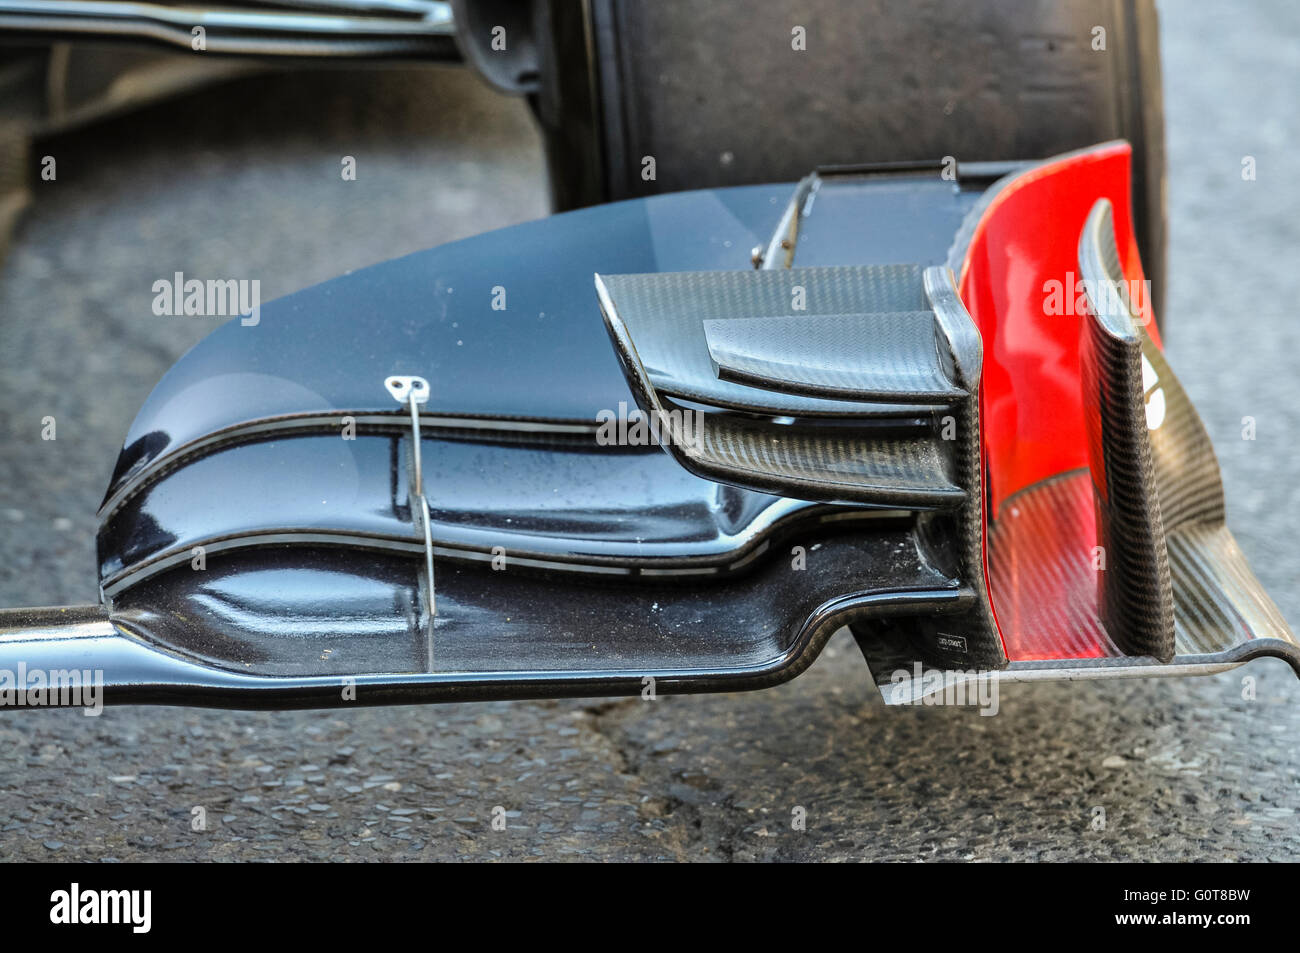 Aerodynamic carbon fibre spoilers on the front nose of a Formula 1 racing car. - Stock Image